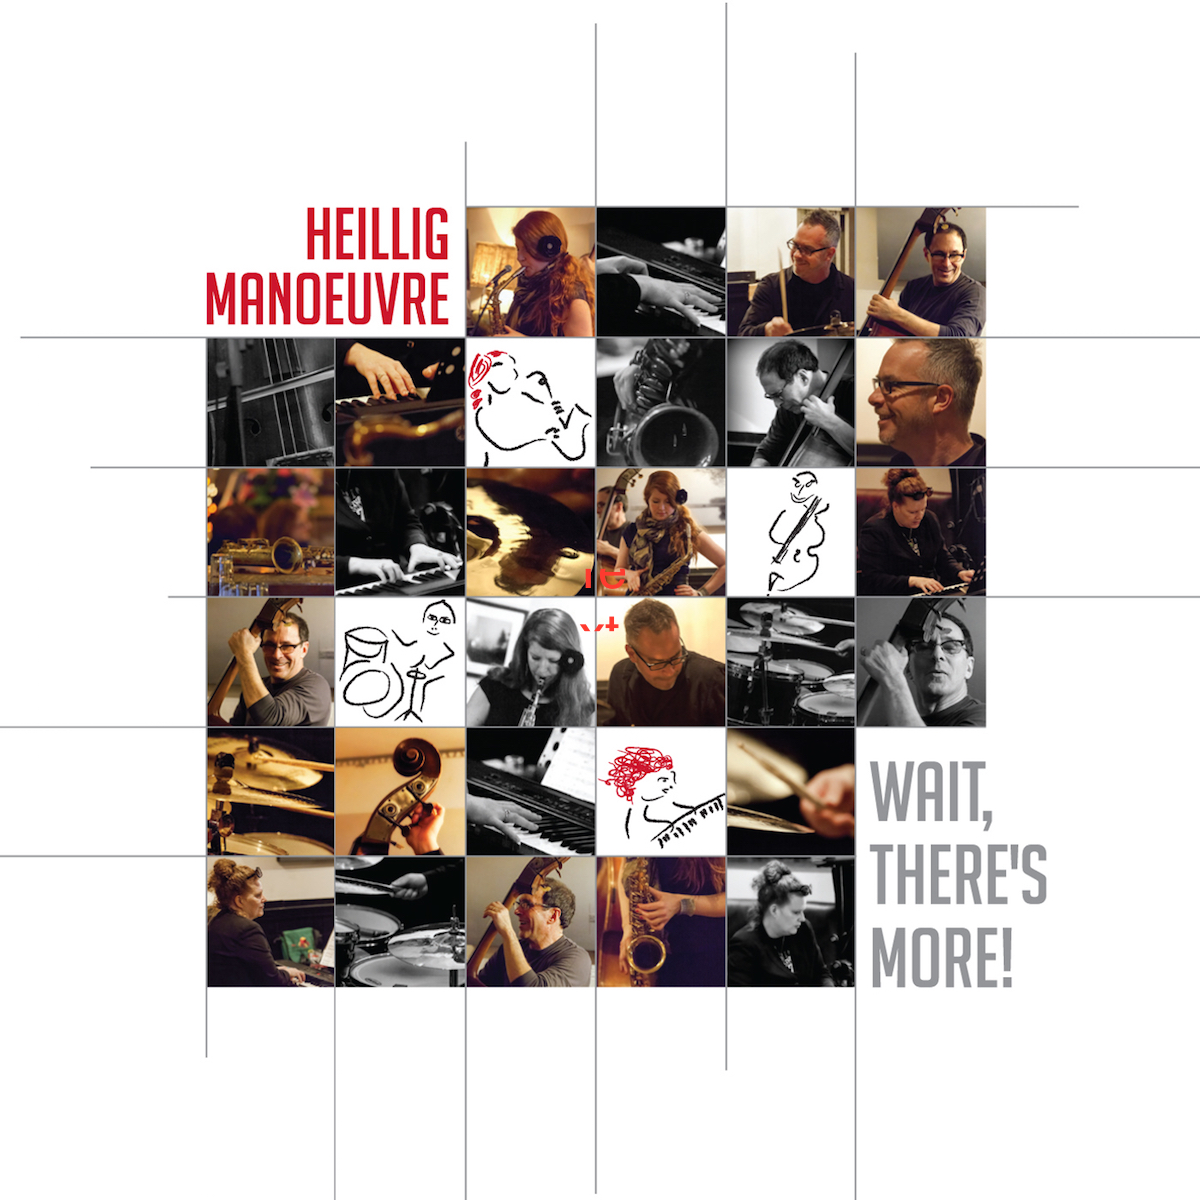 Wait, There's More! - Alison Young : SaxesStacie McGregor : Piano, RhodesCharlie Cooley : DrumsHenry Heillig : BassThis 2015 release includes a re-recording of Ladybug Waltz. As the band is now voiced by sax rather than guitar, the original version does not represent us anymore. We are pleased to note that JAZZ.FM continues to play the song, in this remodeled version.